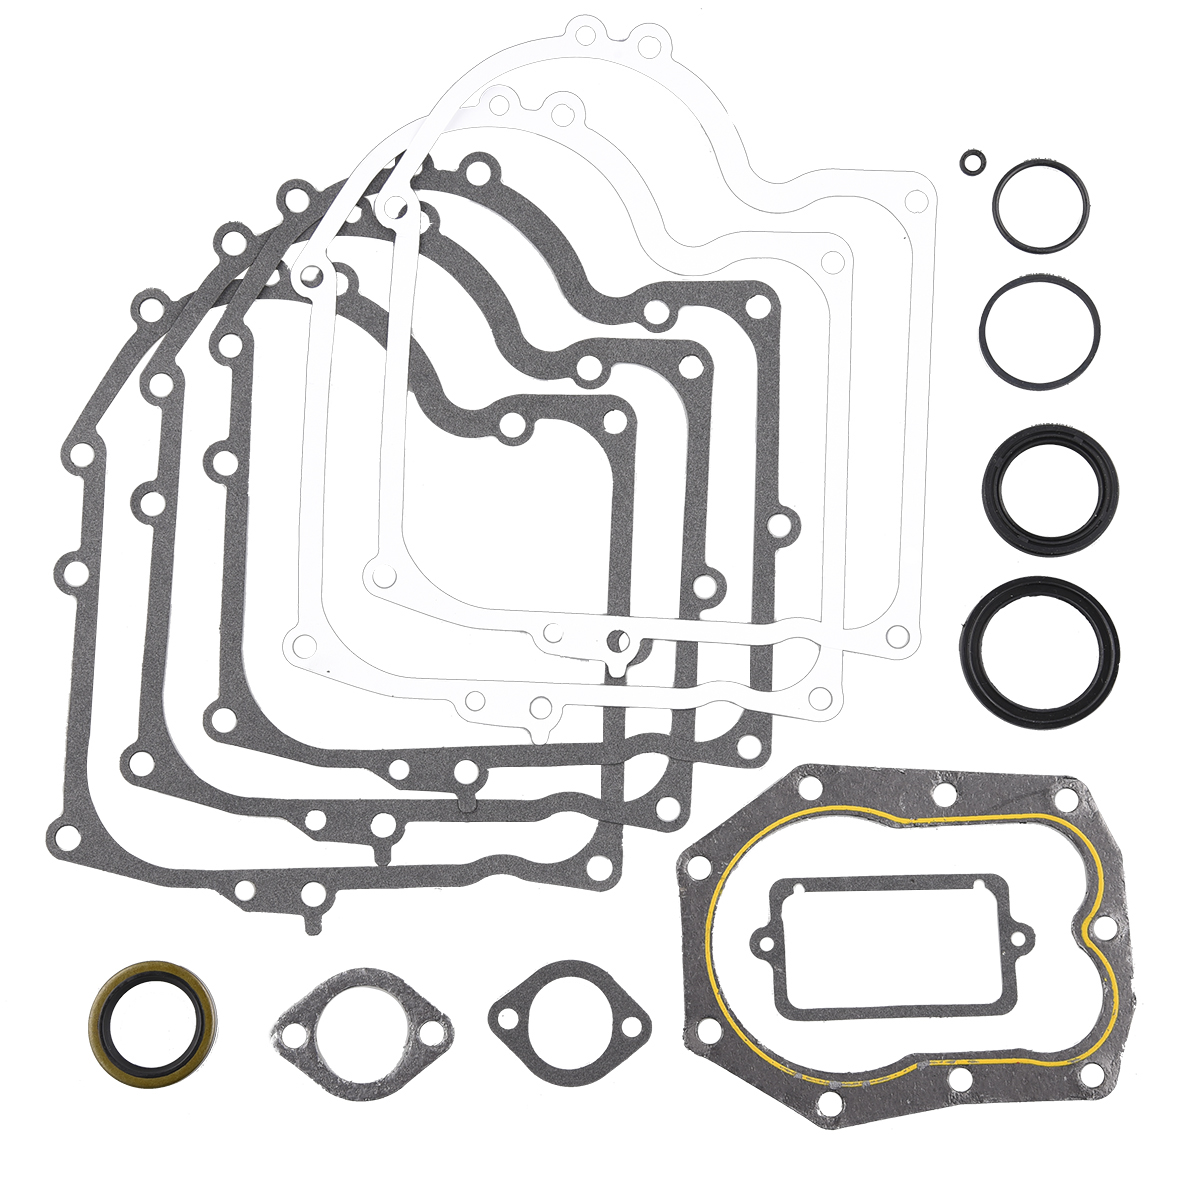 Replacement Gasket Set Fits Briggs And Stratton 494241